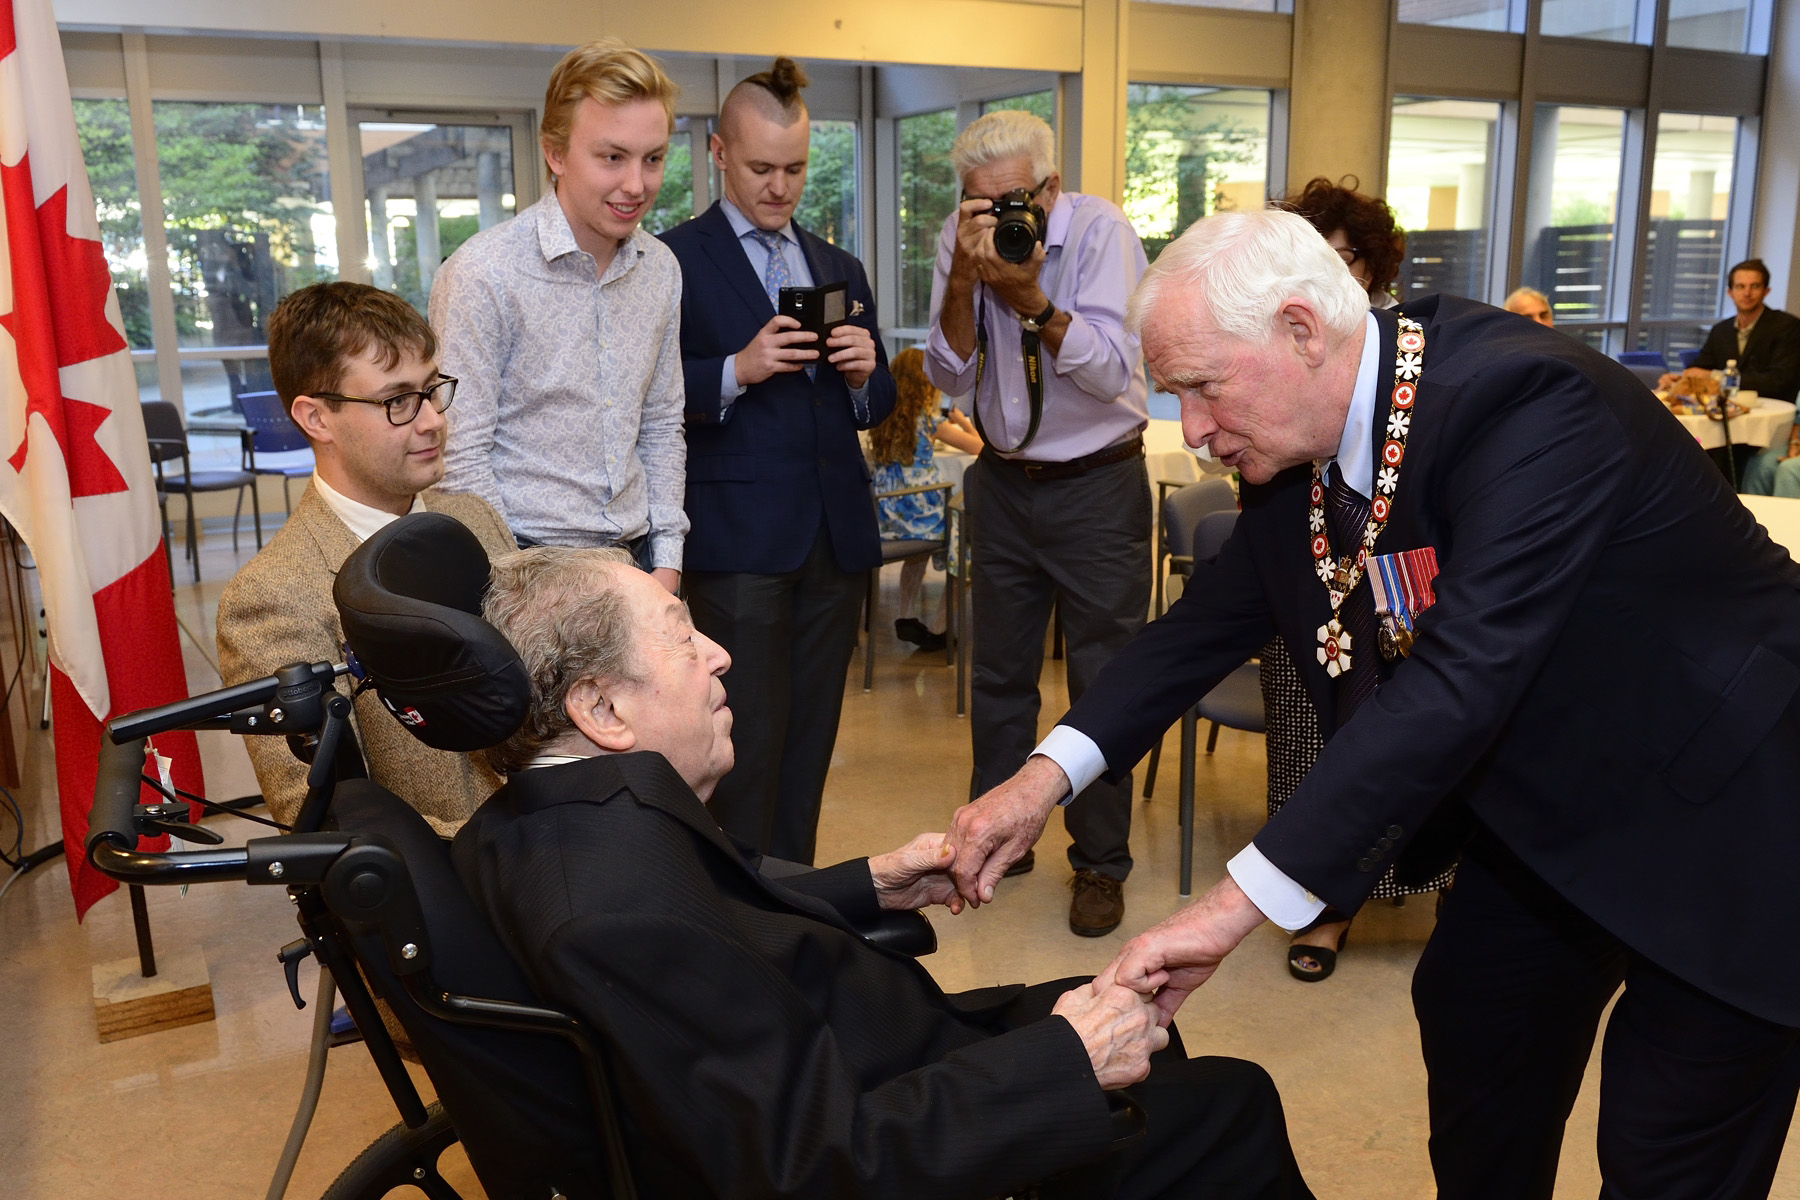 In the evening, the Governor General presented the insignia of Member of the Order of Canada to Eli Kassner during a ceremony at Baycrest Health Sciences Centre.